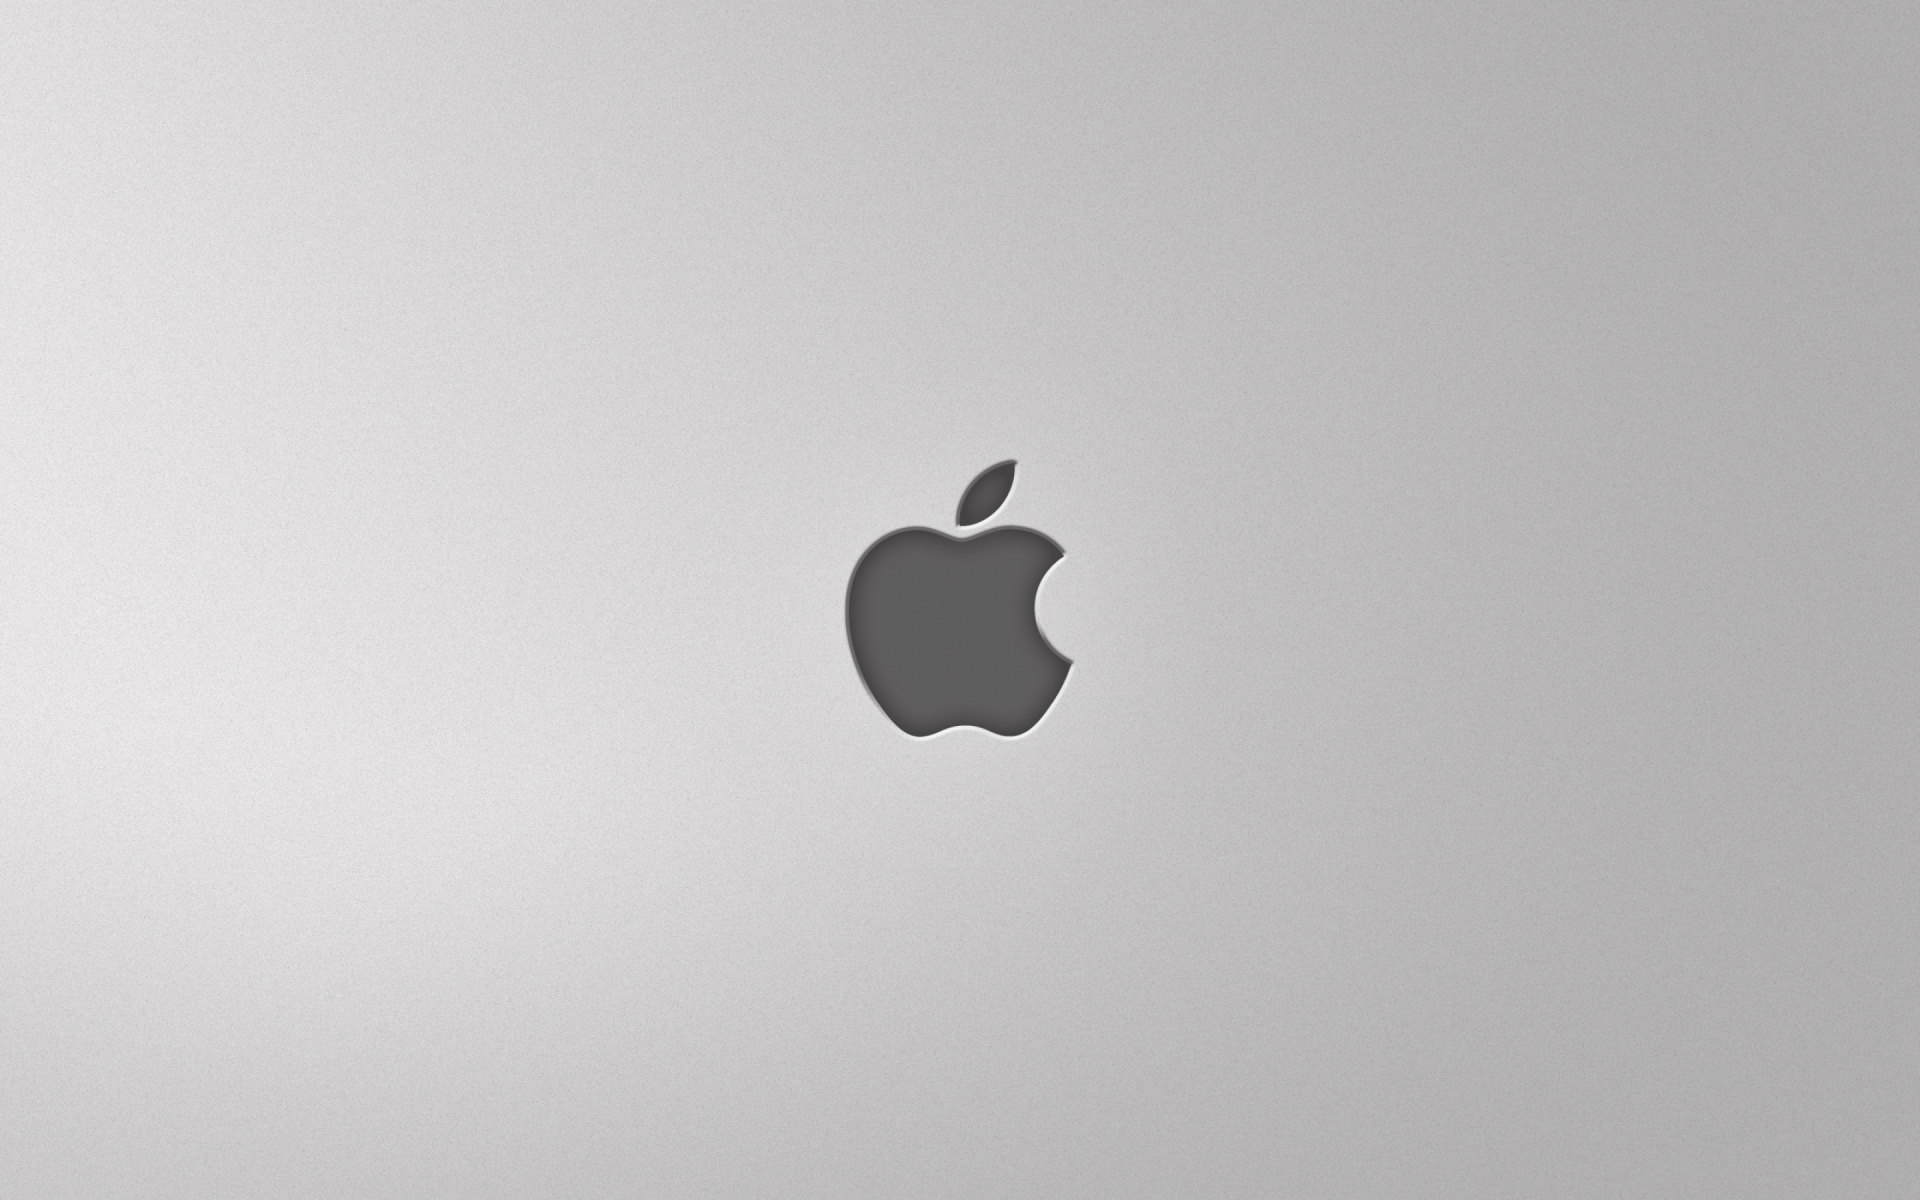 Logo de Apple - 1920x1200